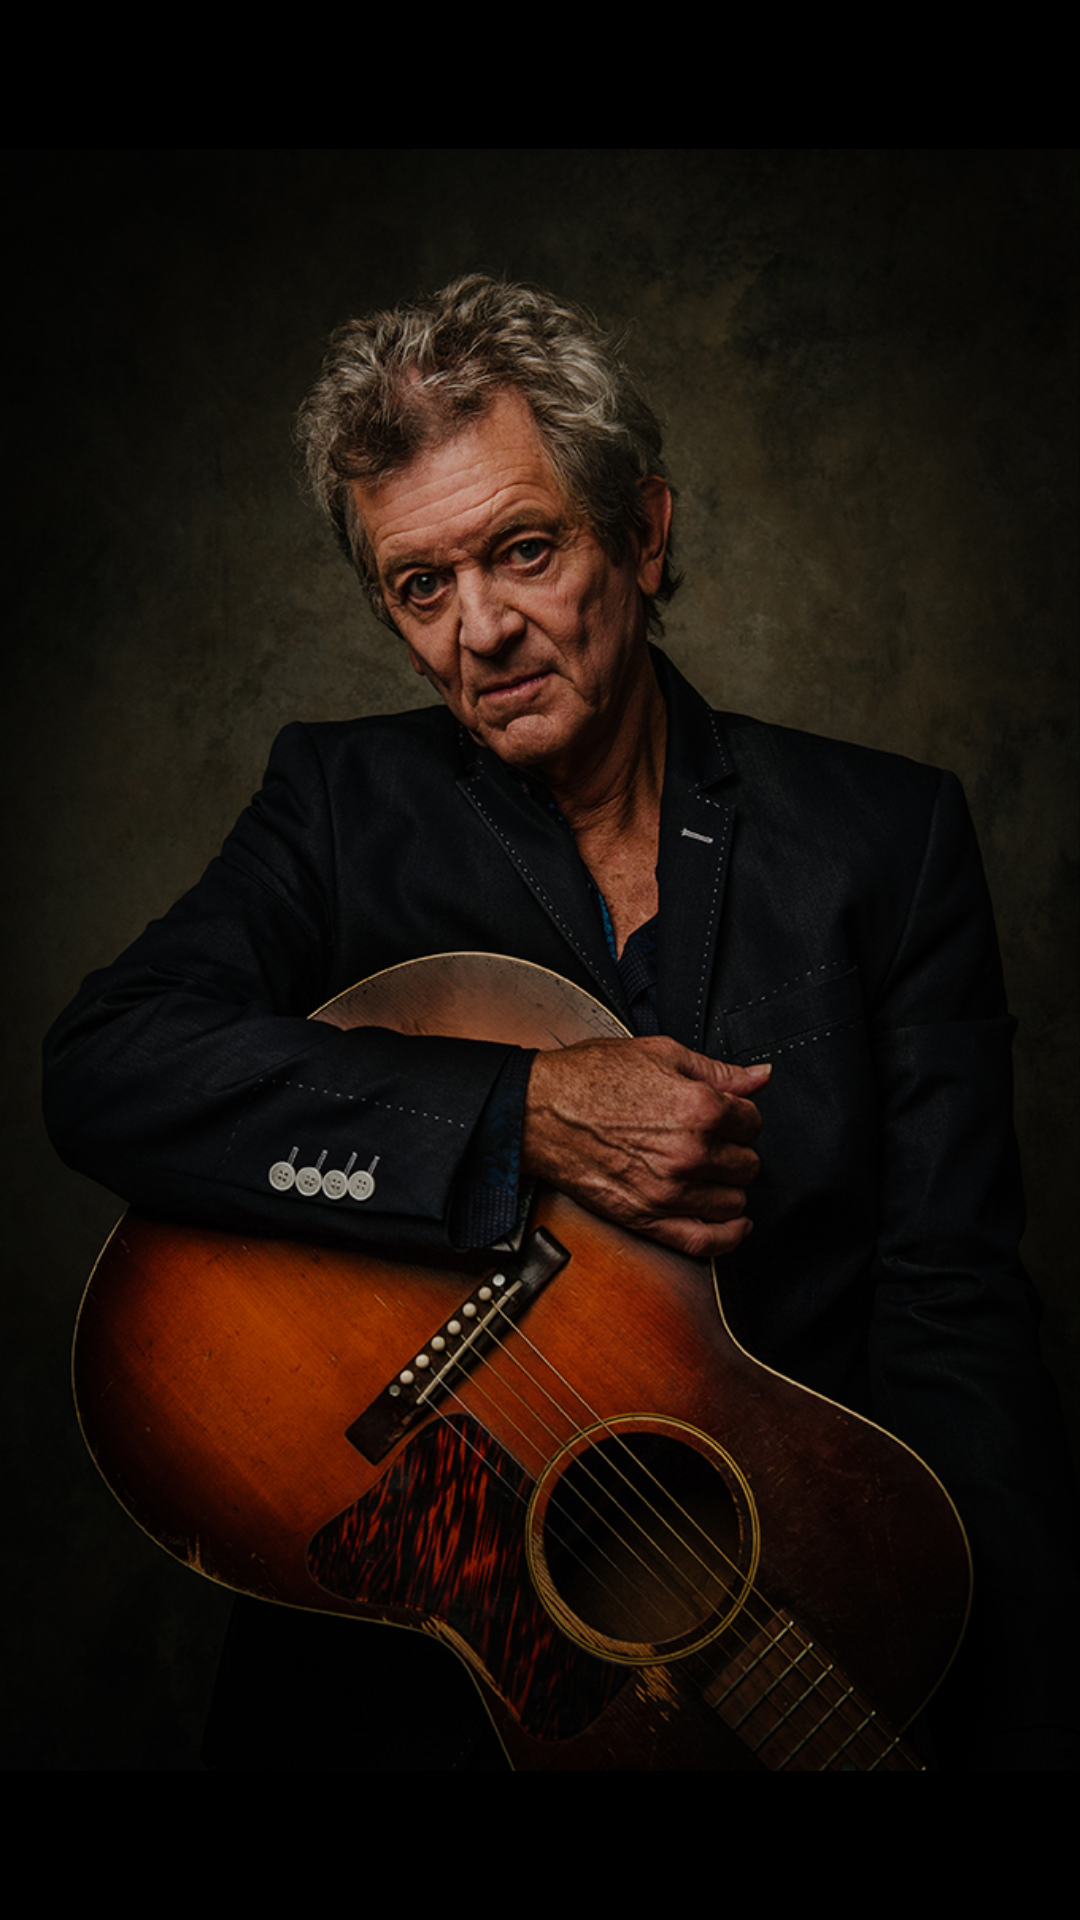 Two-Time Grammy Winner Rodney Crowell to Perform at the Astra